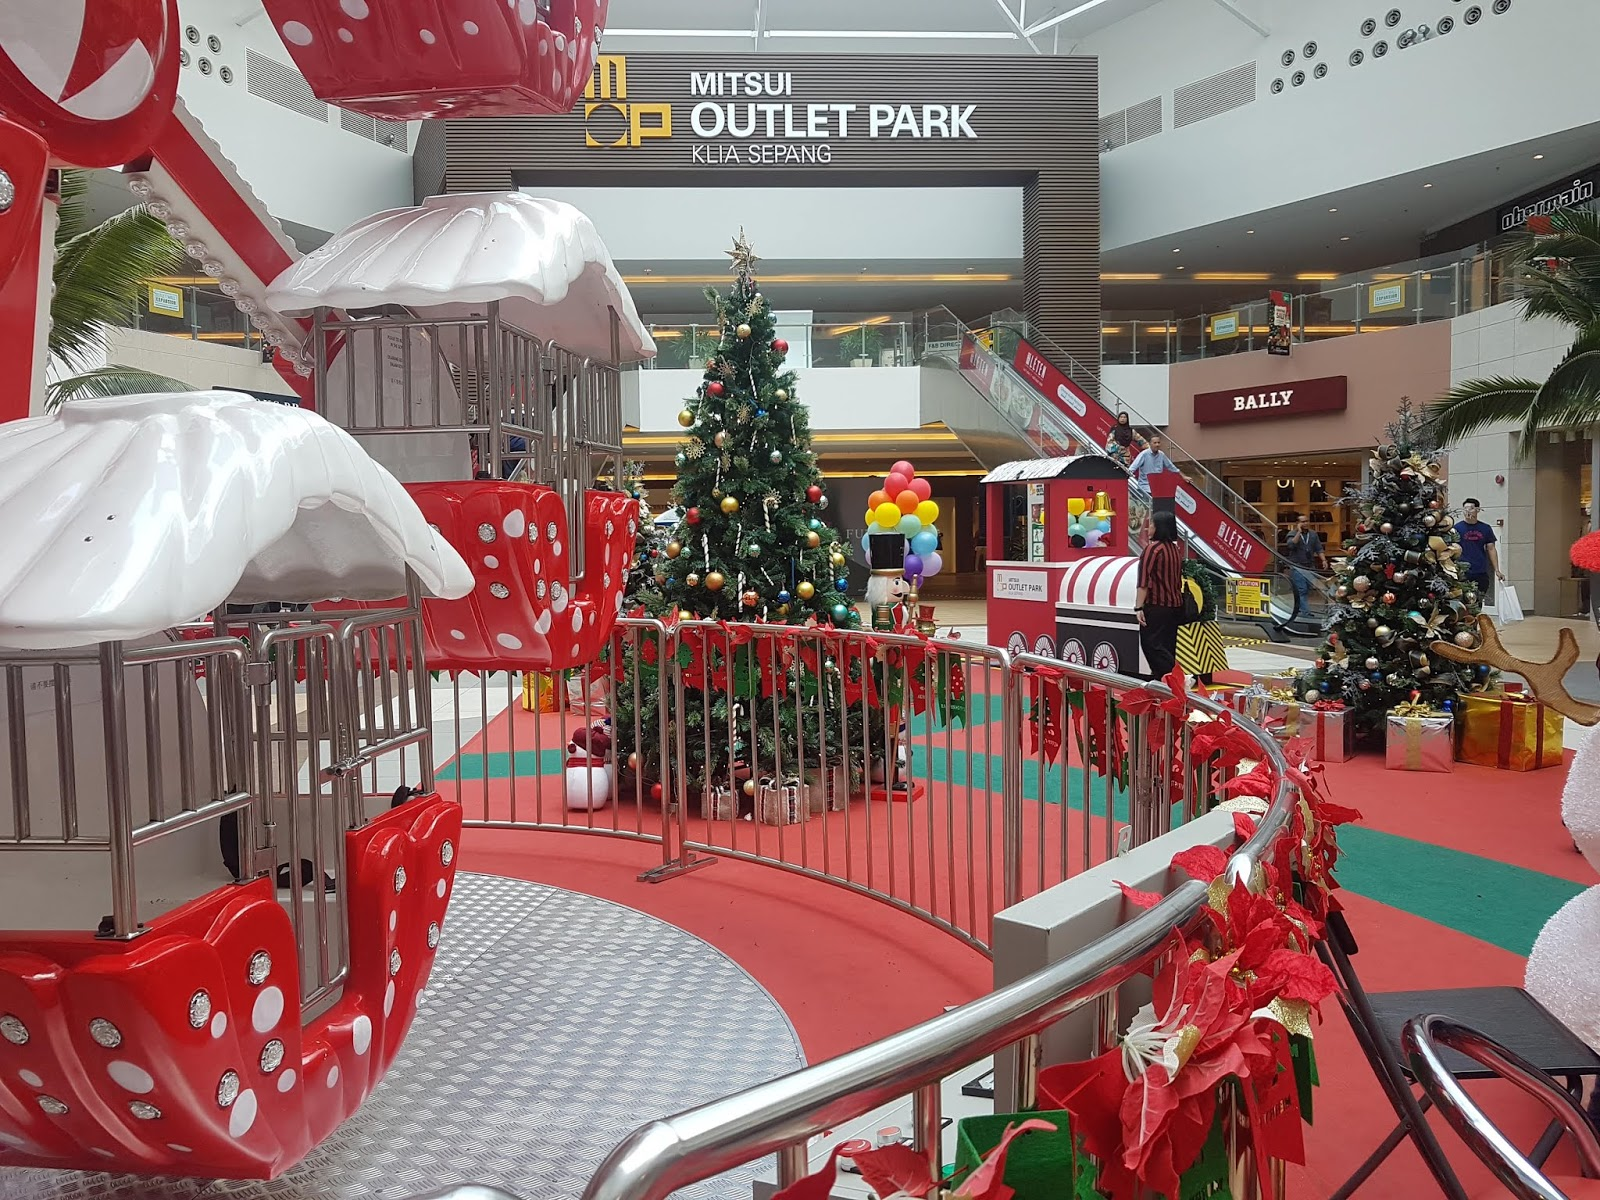 [Event] The Nutcracker Magic this Holiday Season @ Mitsui Outlet Park KLIA Sepang